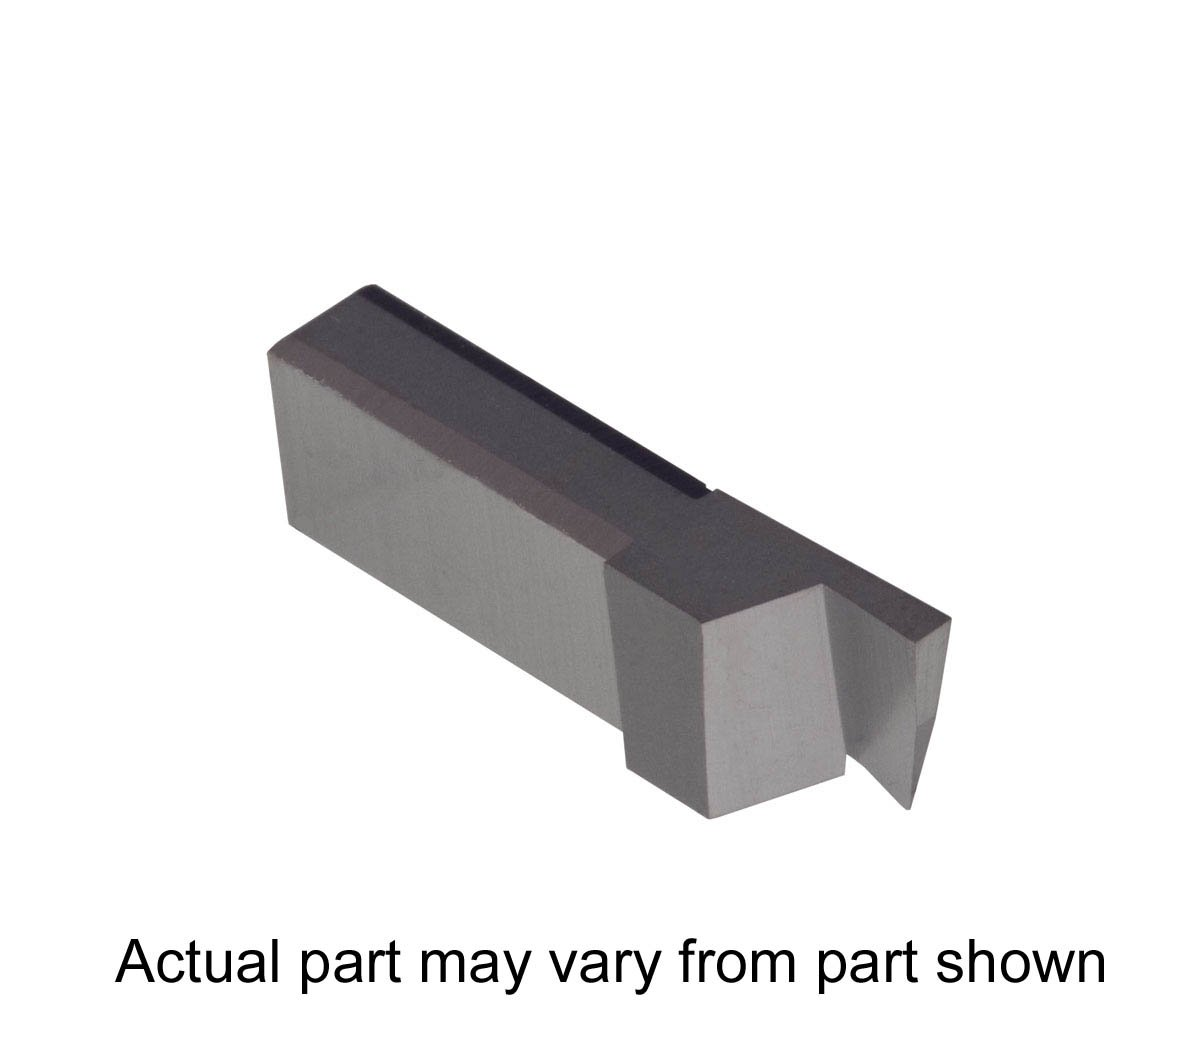 Nickel Alloys and Stainless Steel with Interrupted Cuts Grooving Insert for Steel TiAlN Coated Carbide Titanium THINBIT 3 Pack LGT062D2RE 0.062 Width 0.155 Depth Sharp Corner